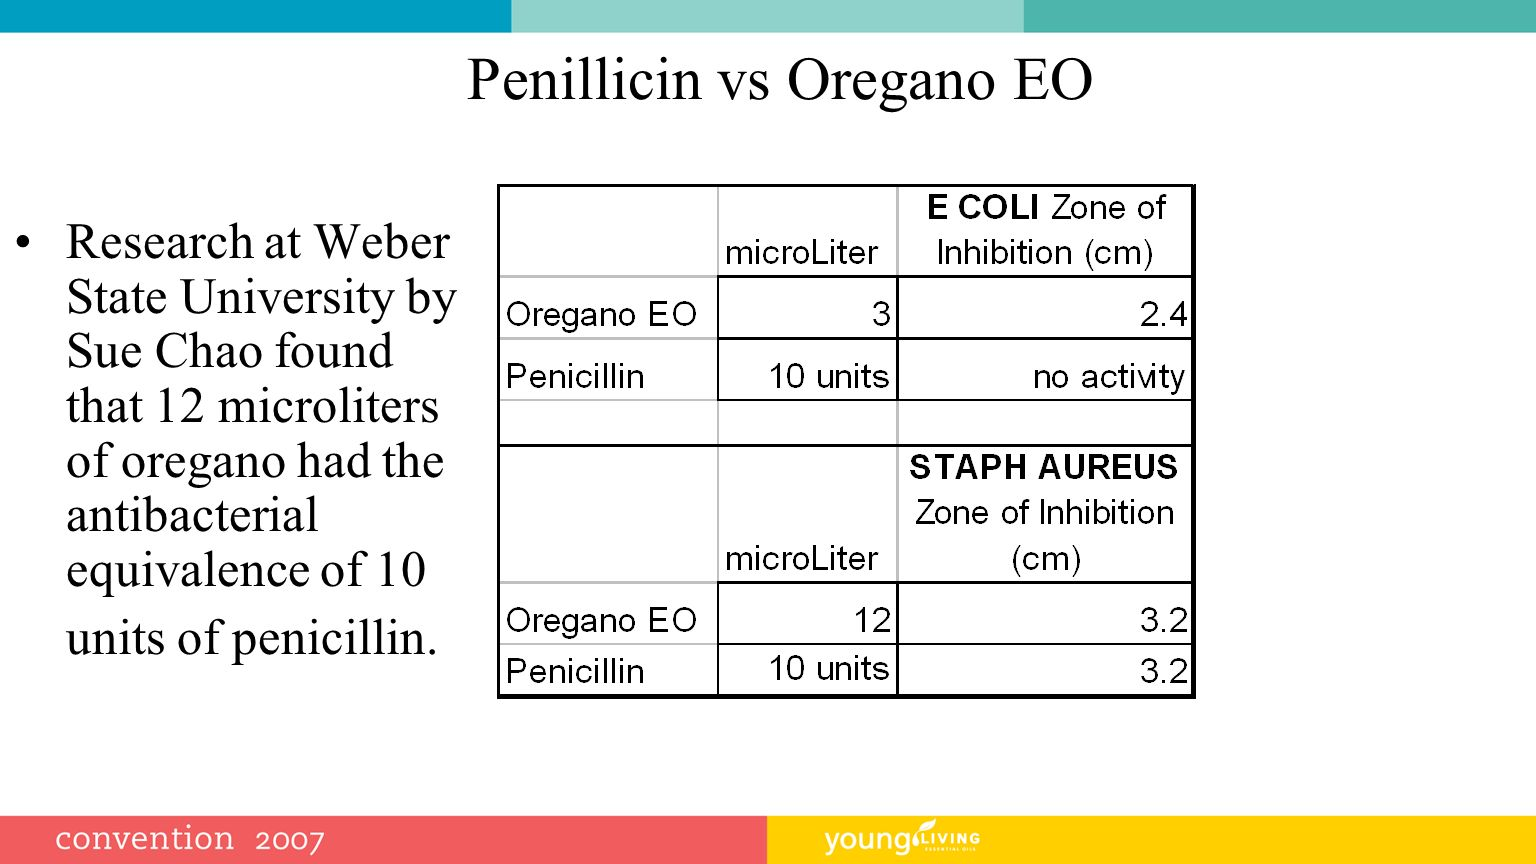 Penillicin vs Oregano EO Research at Weber State University by Sue Chao found that 12 microliters of oregano had the antibacterial equivalence of 10 units of penicillin.